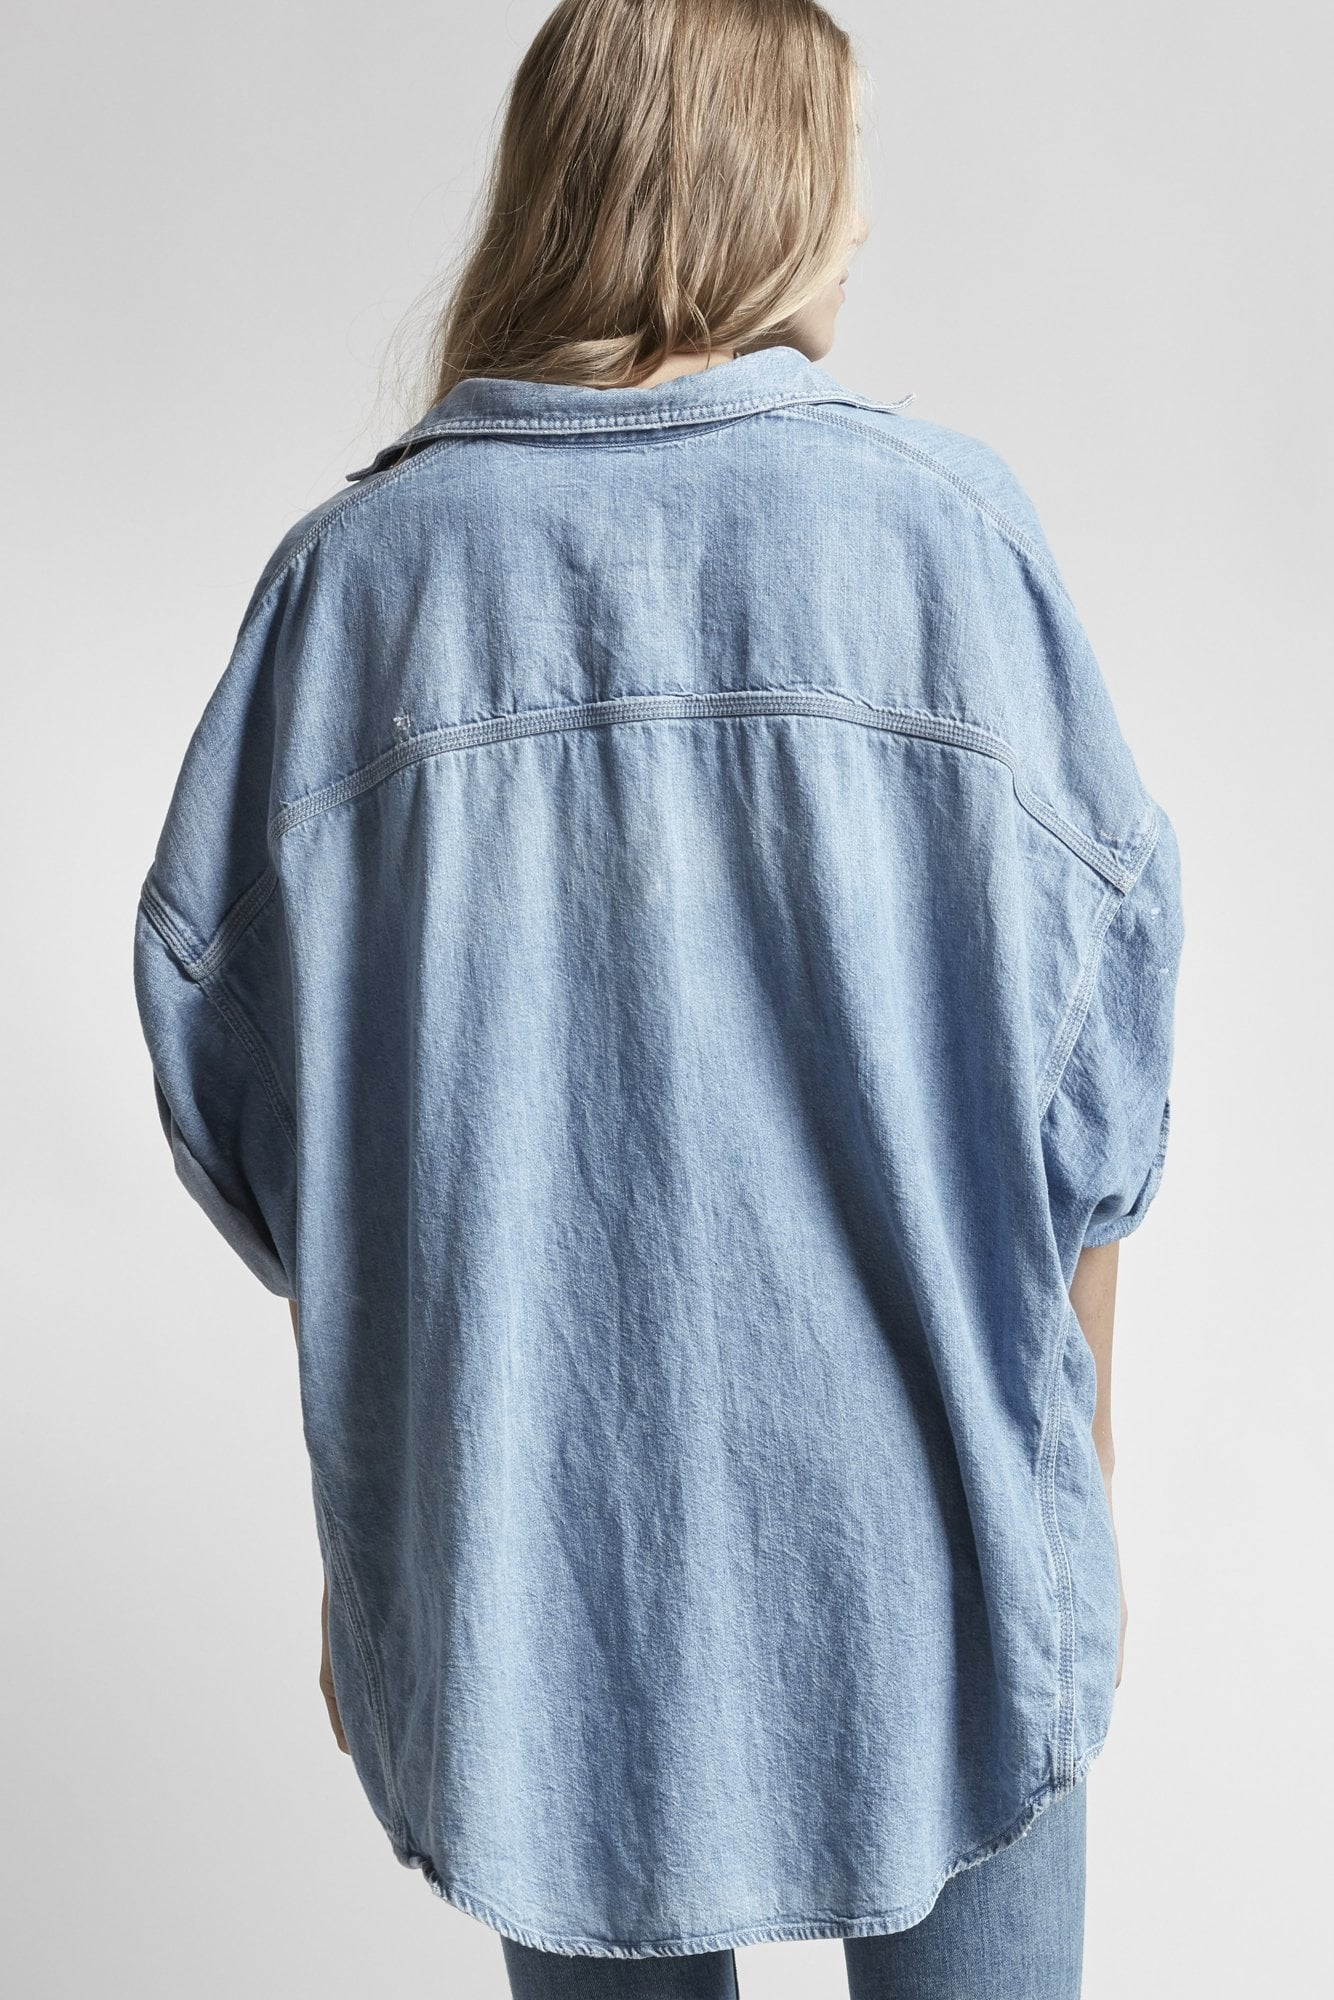 Patti Oversized Short-Sleeve Shirt - Timmy